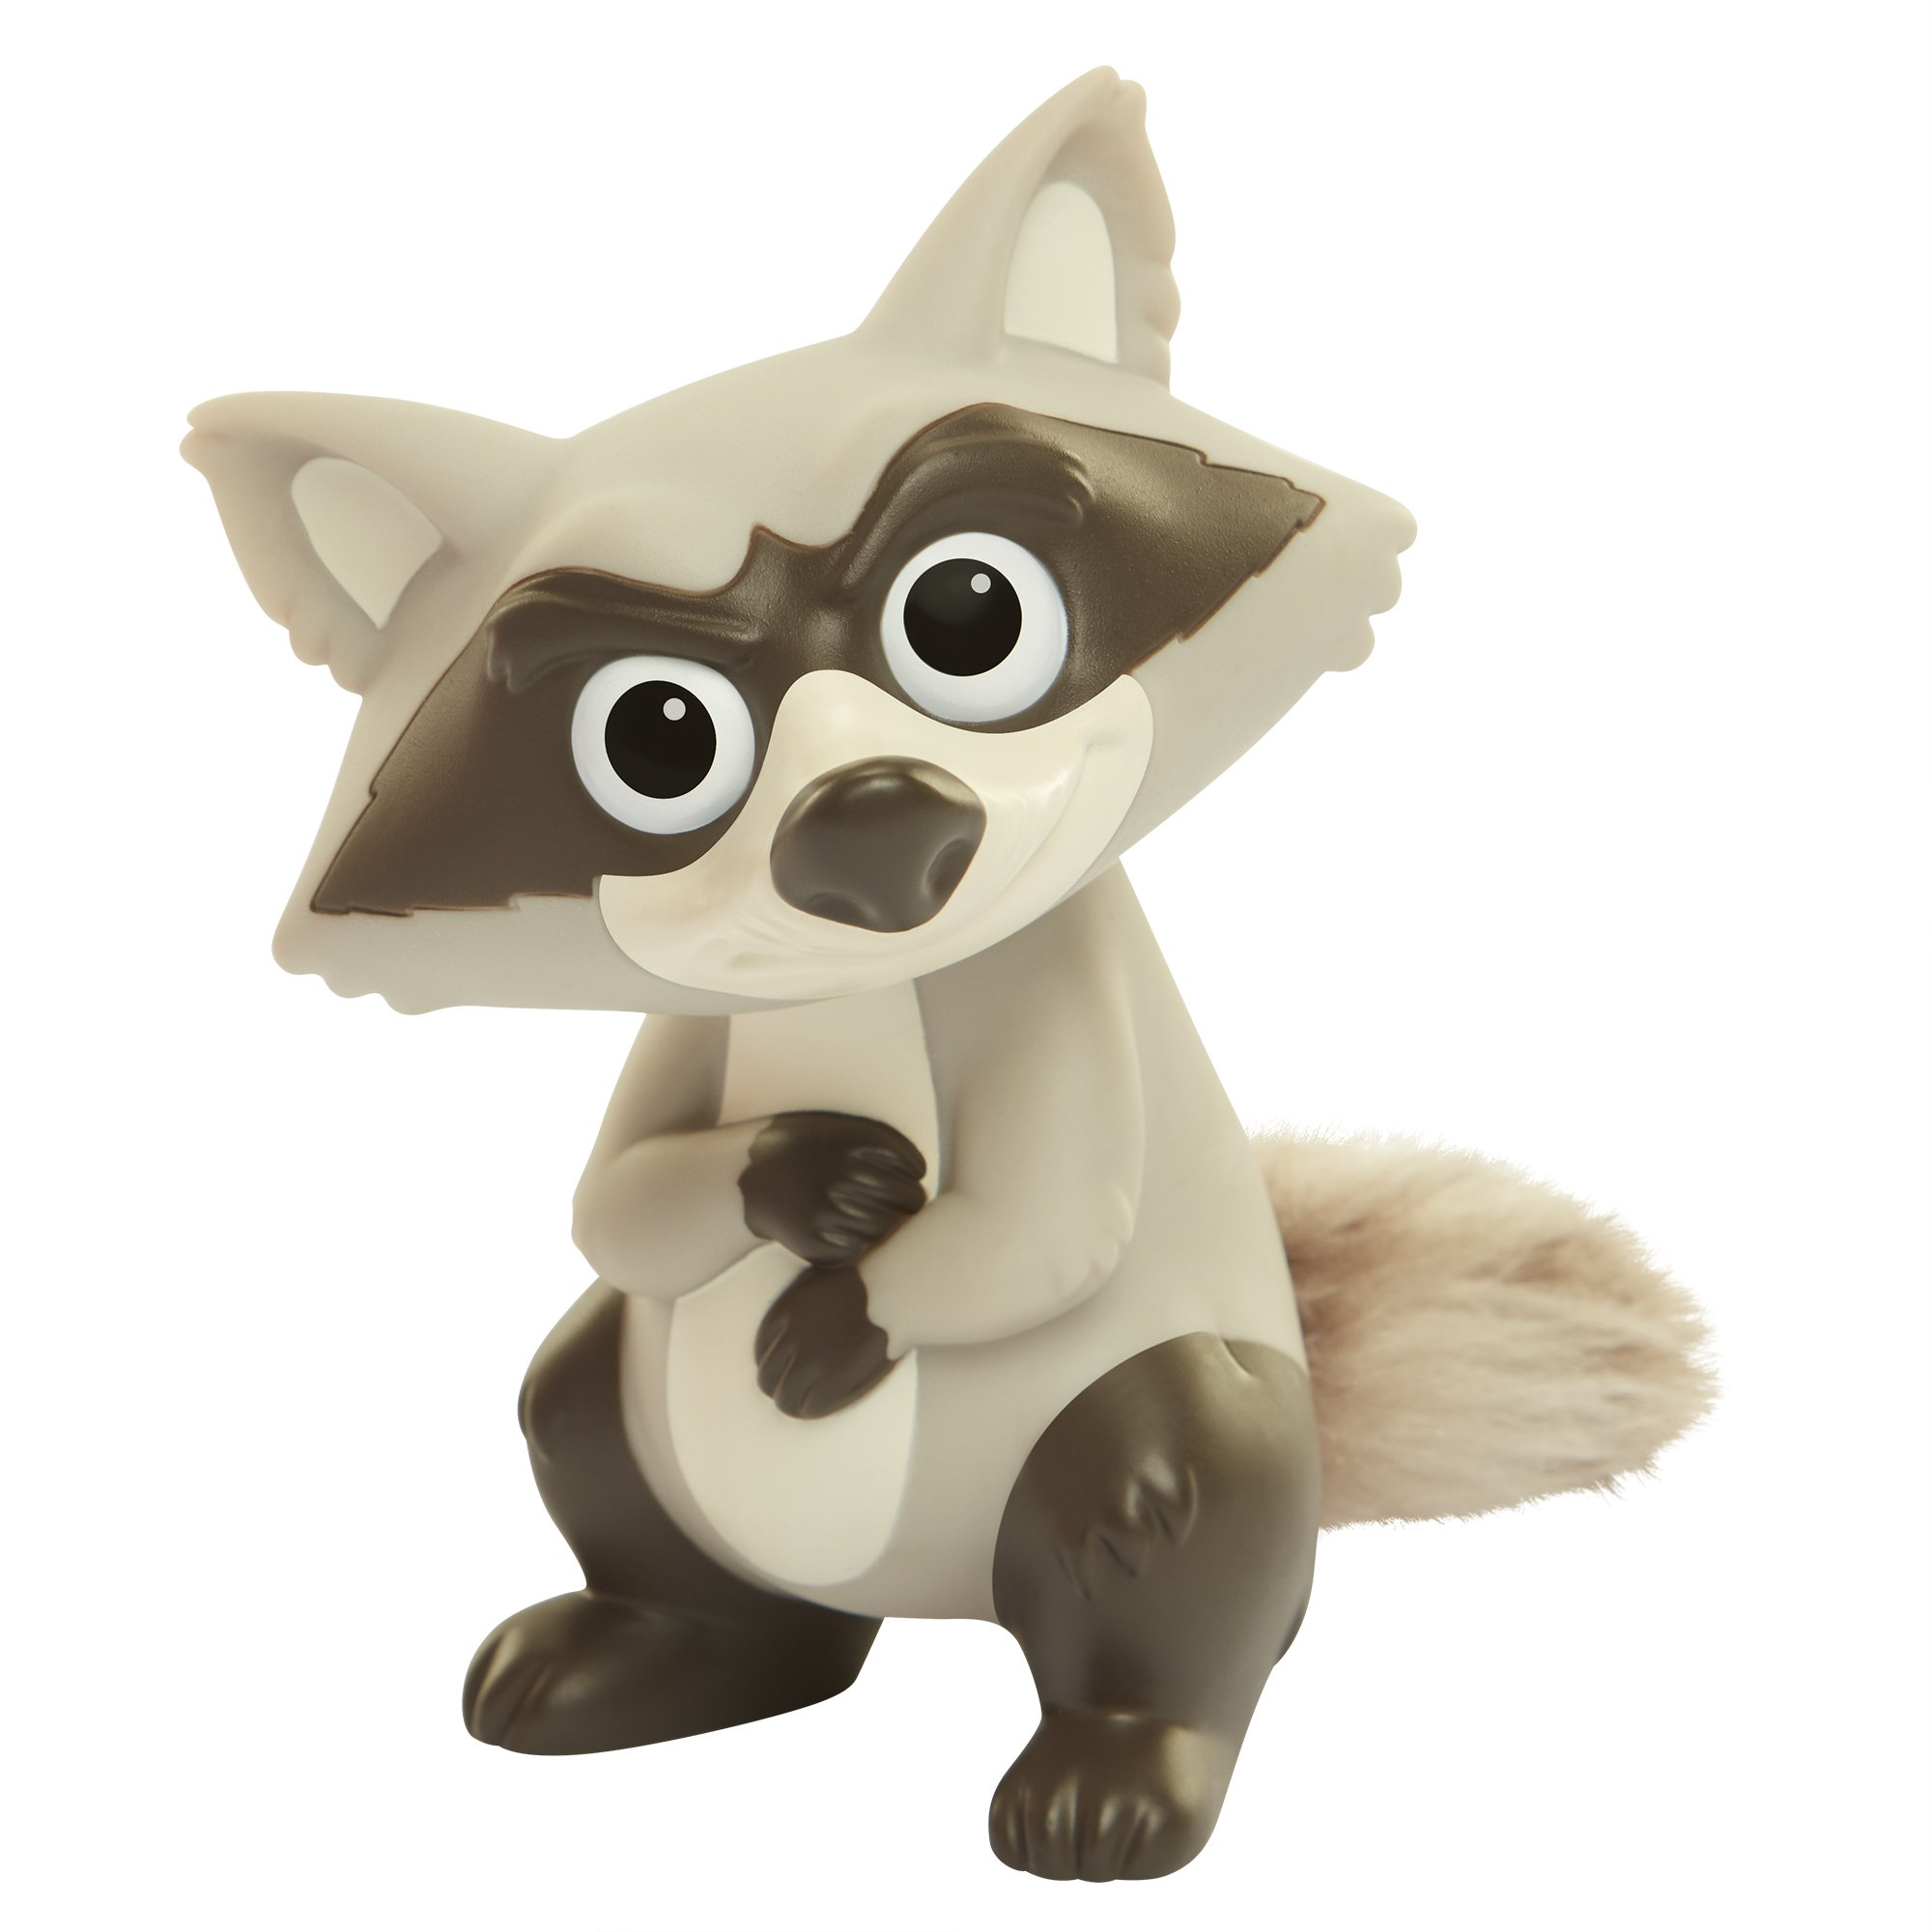 The Incredibles 2 Jack-Jack Plush-Figure Features Lights & Sounds and comes with Raccoon Toy by The Incredibles 2 (Image #6)